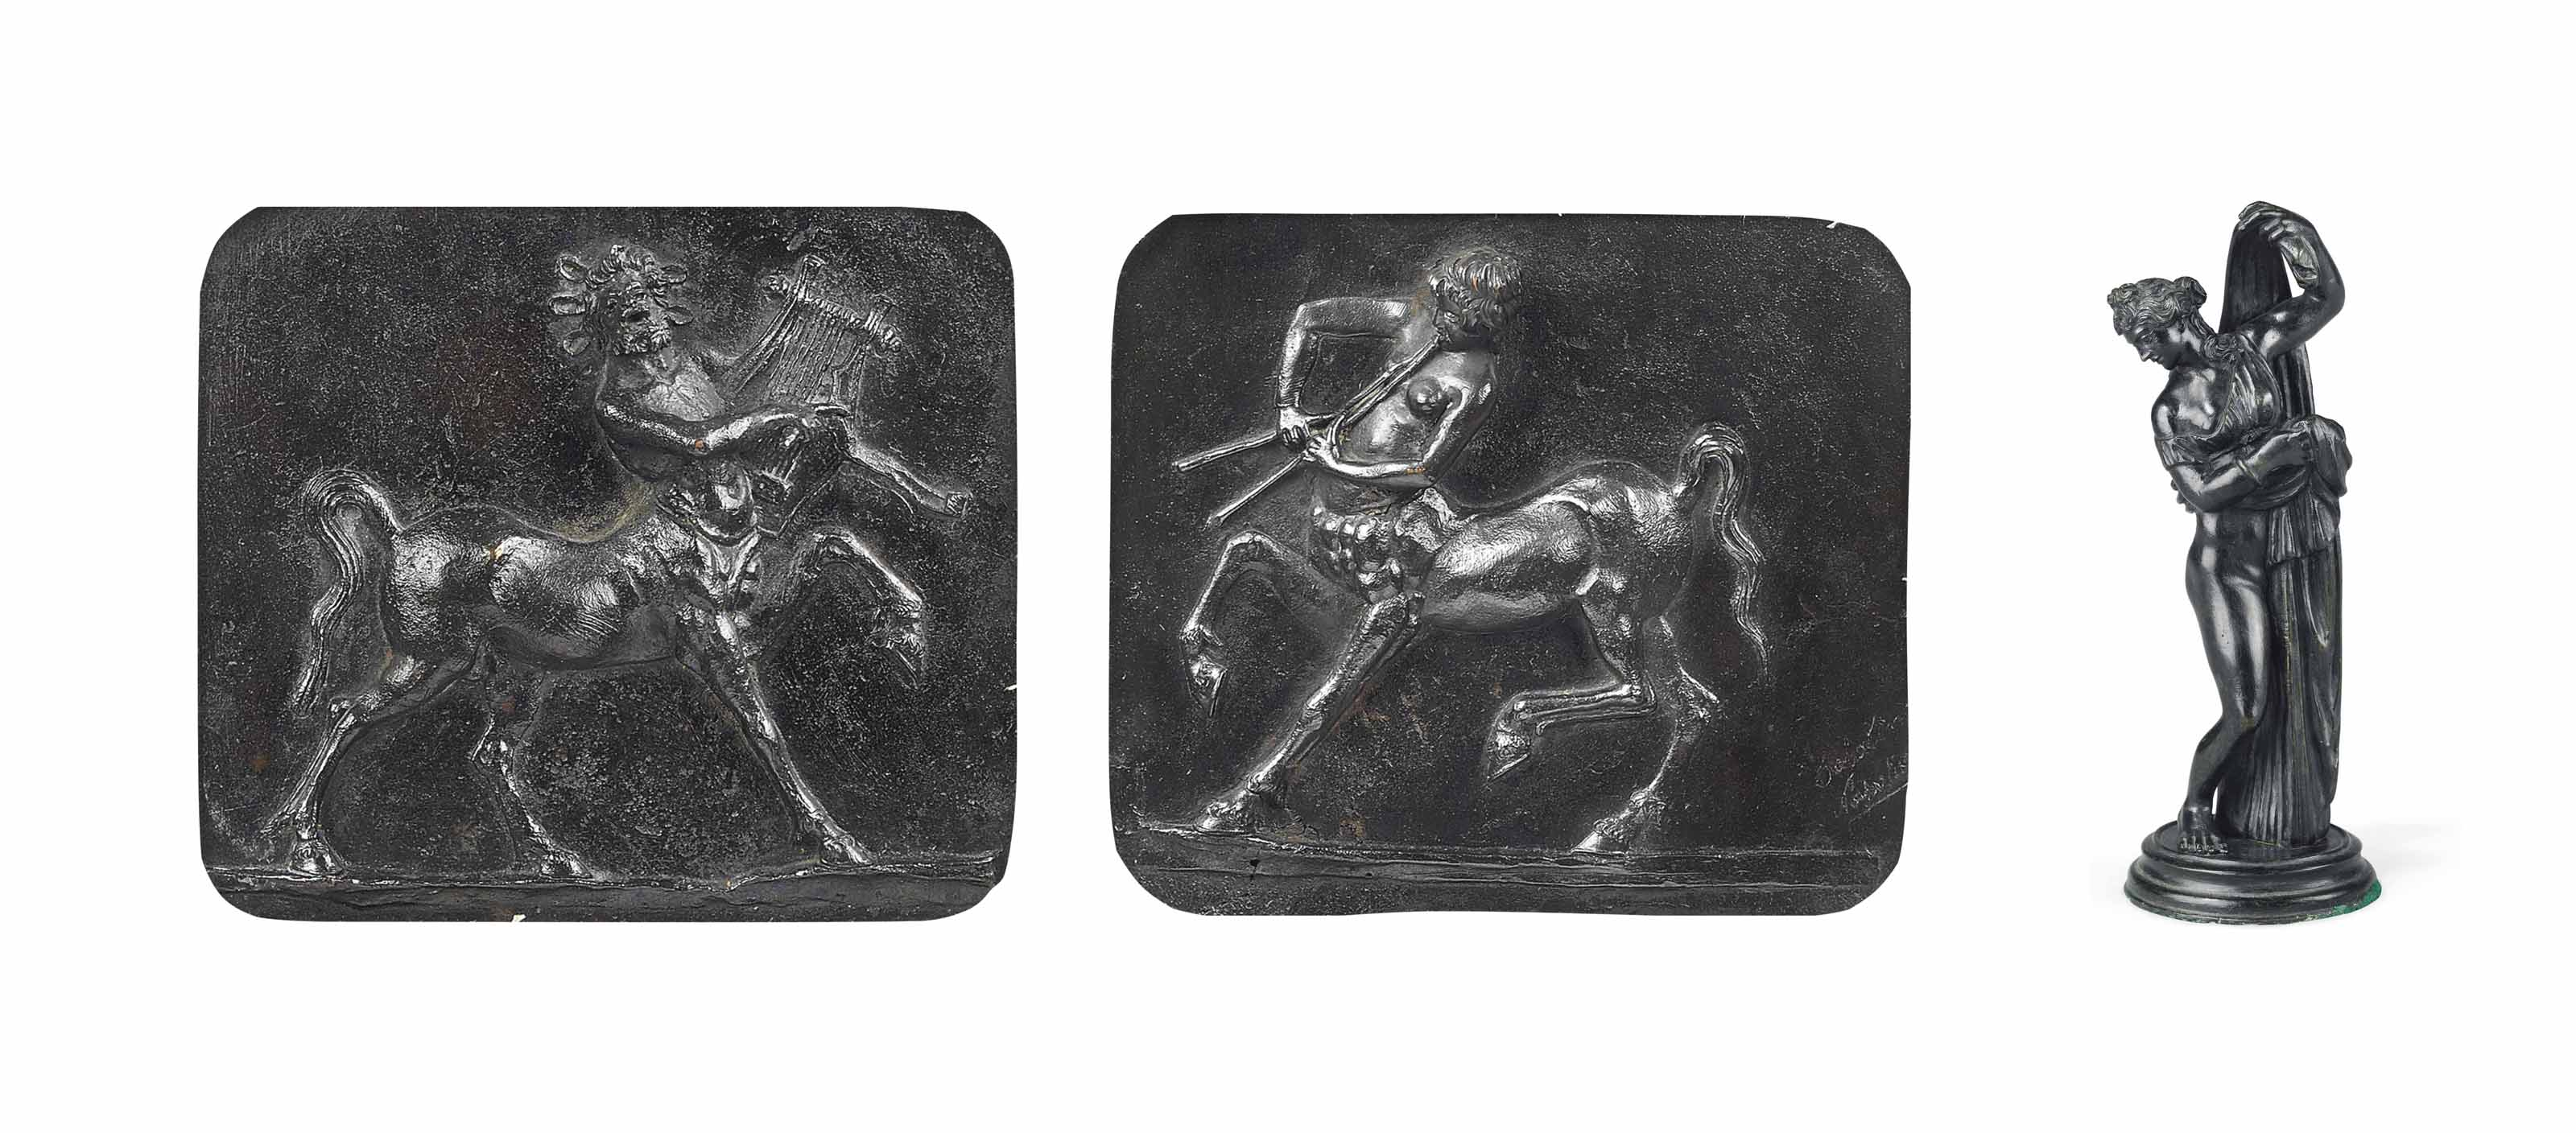 A PAIR OF ITALIAN PATINATED BRONZE RELIEF PLAQUES OF CENTAURS